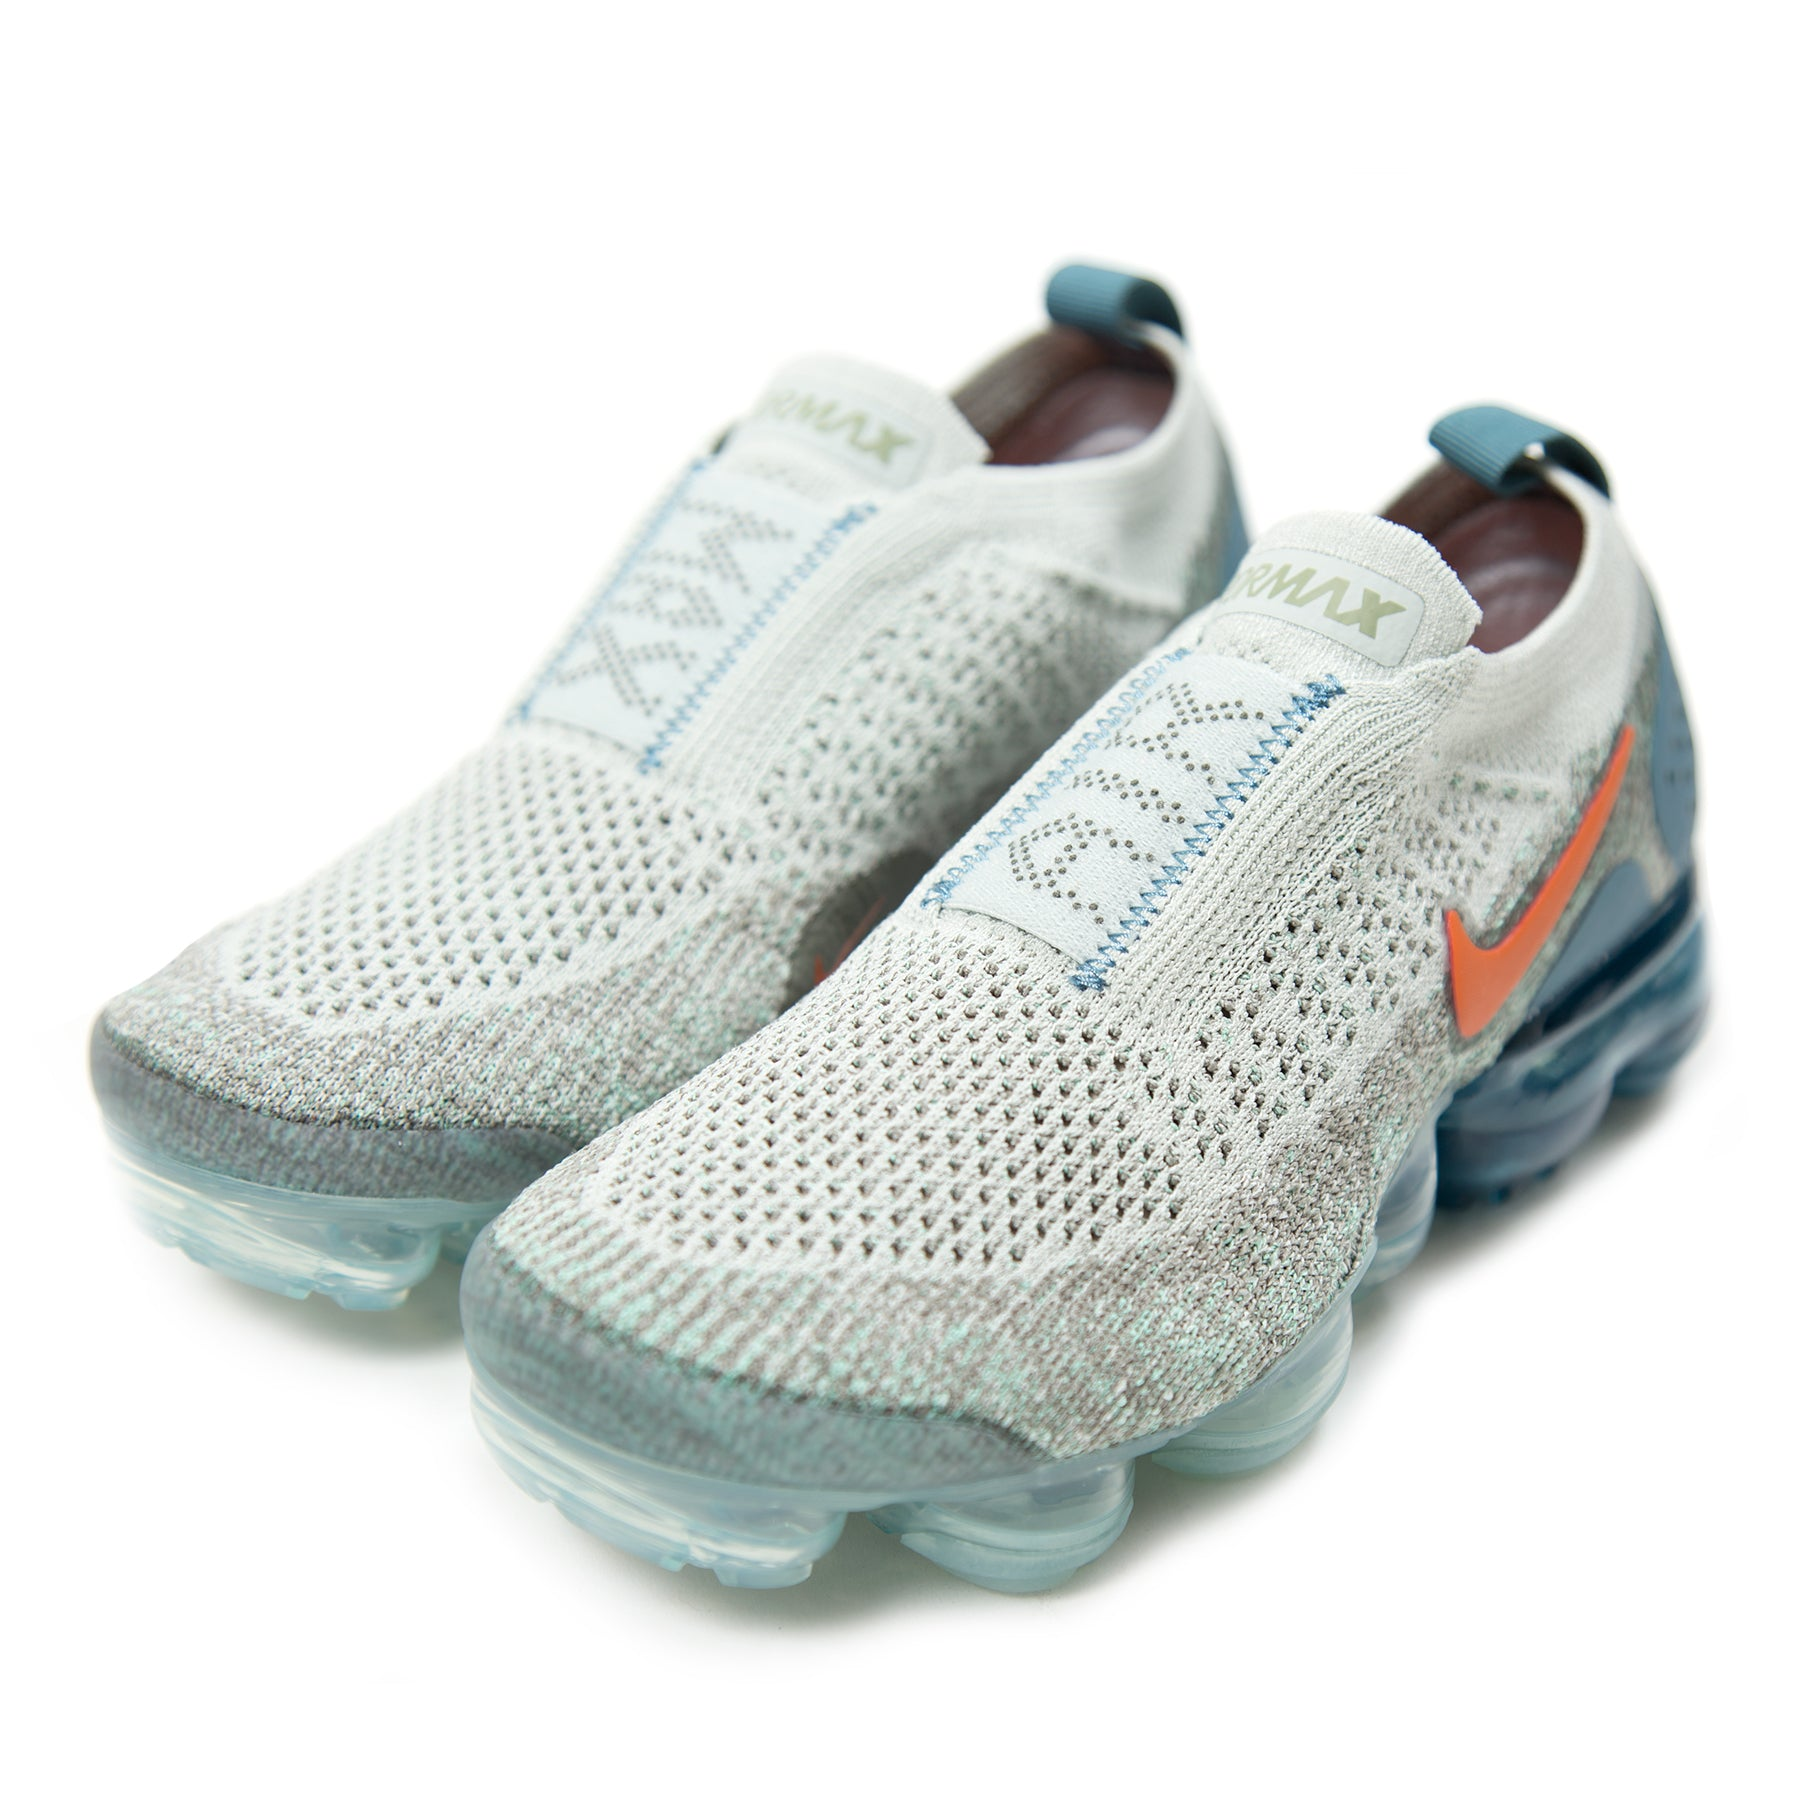 ConceptsIntl | Nike Womens Air Vapormax Flyknit Moc 2 (Light